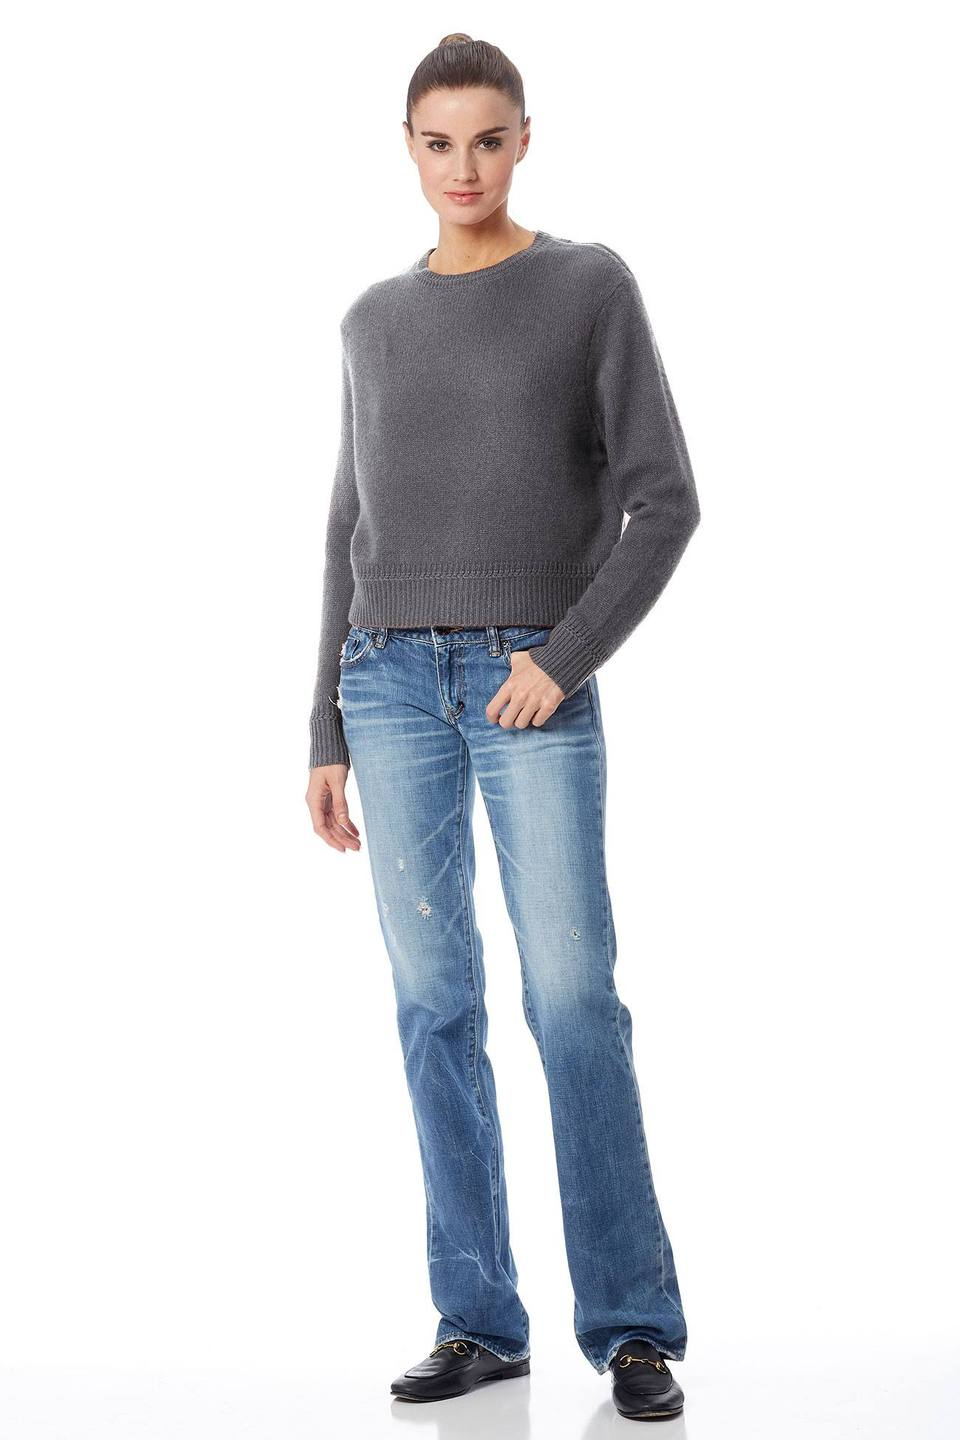 360 SWEATER 36223 mariana cropped crew